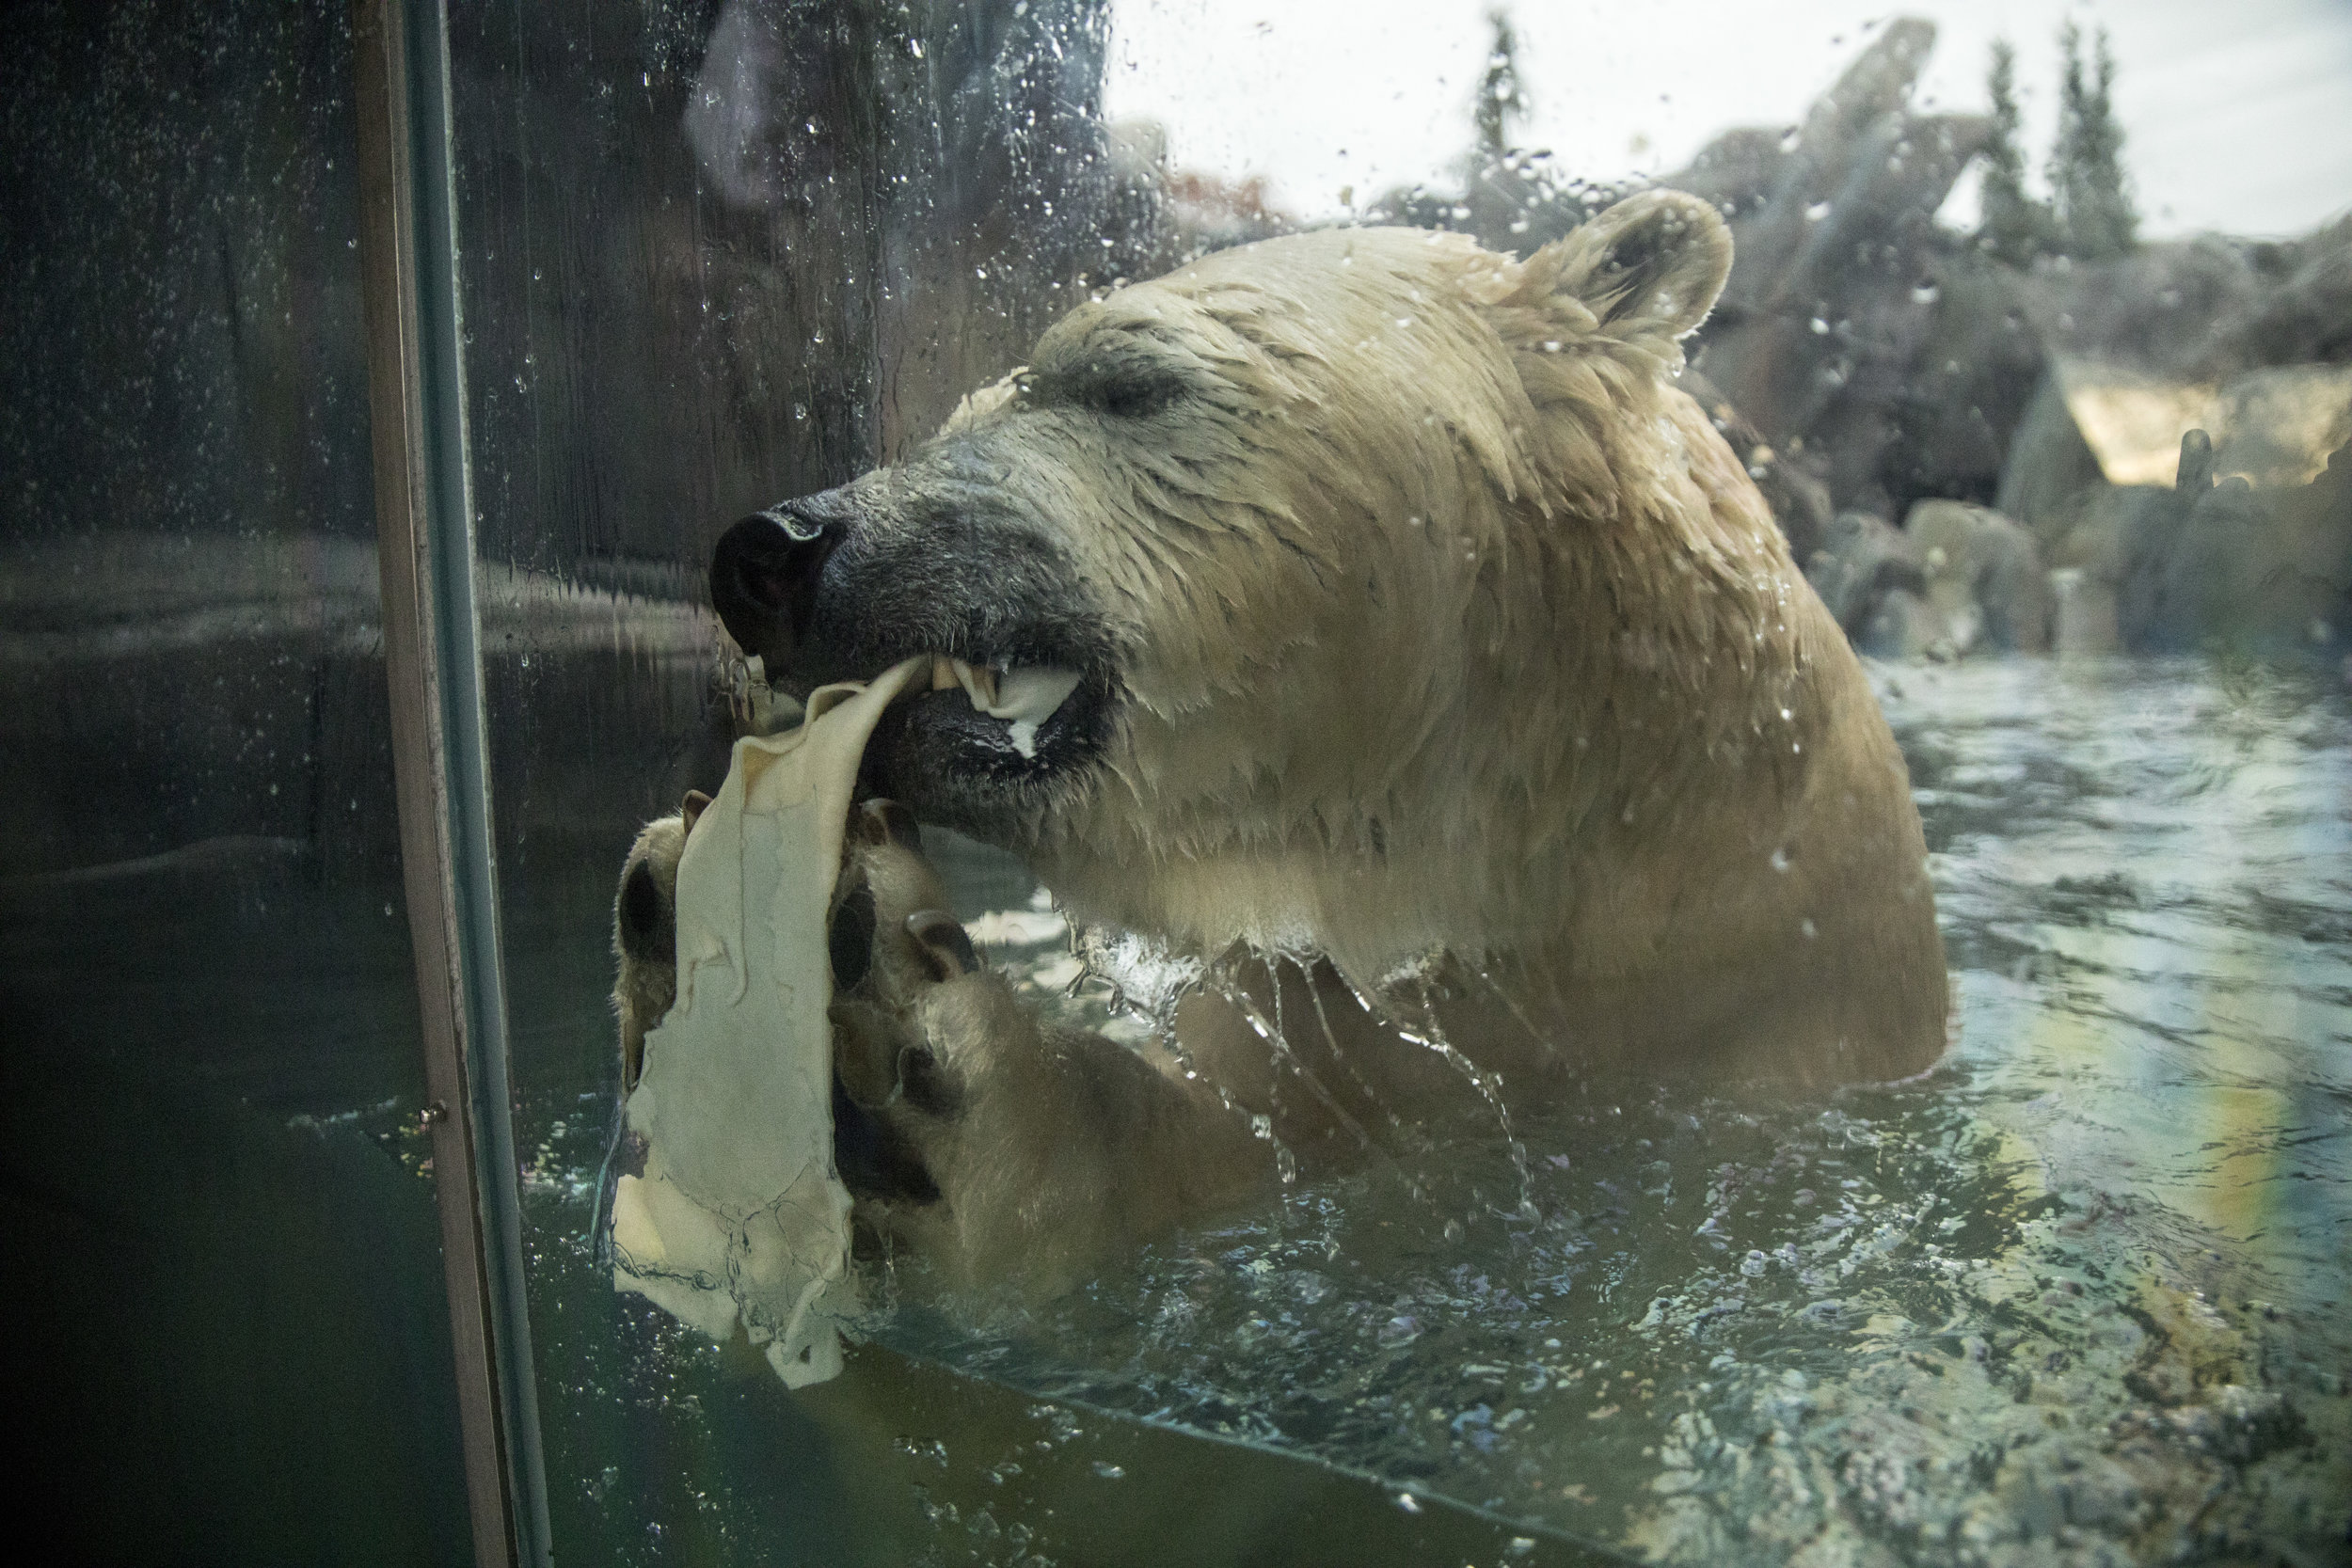 Saint_Louis_Zoo_Photography_Polar_Bear_2.jpg